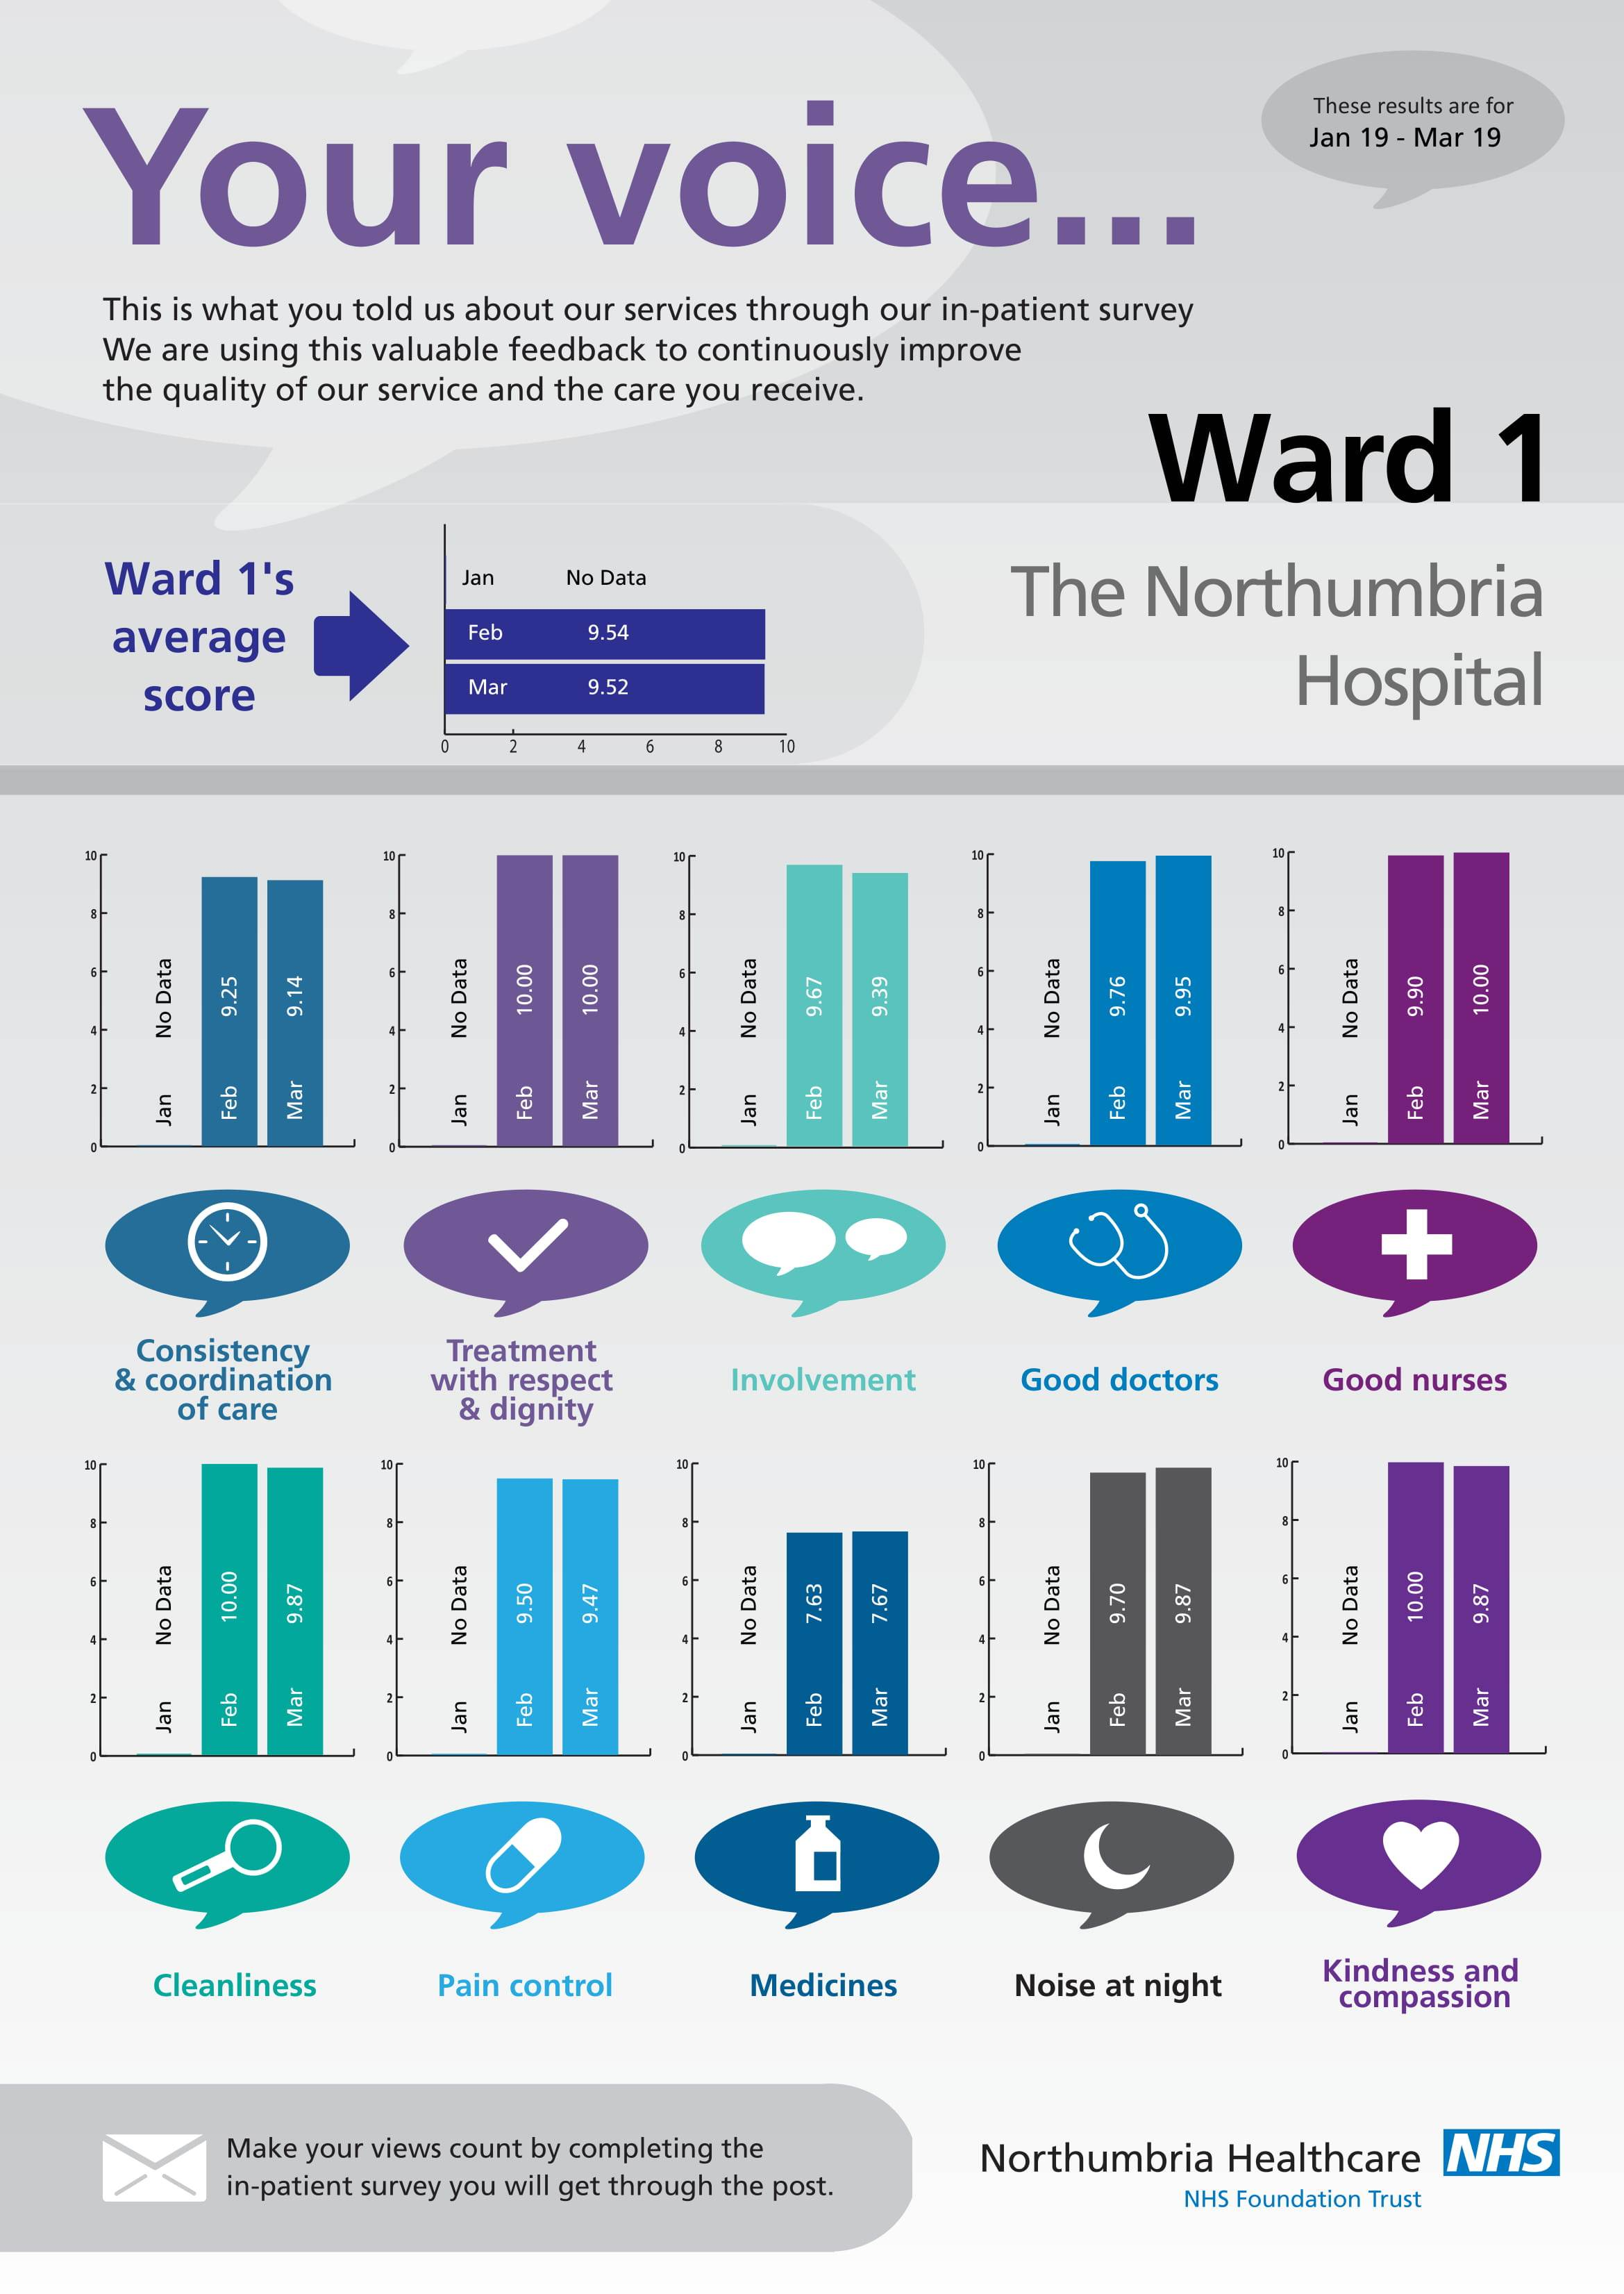 The Northumbria Hospital - Ward 1-1